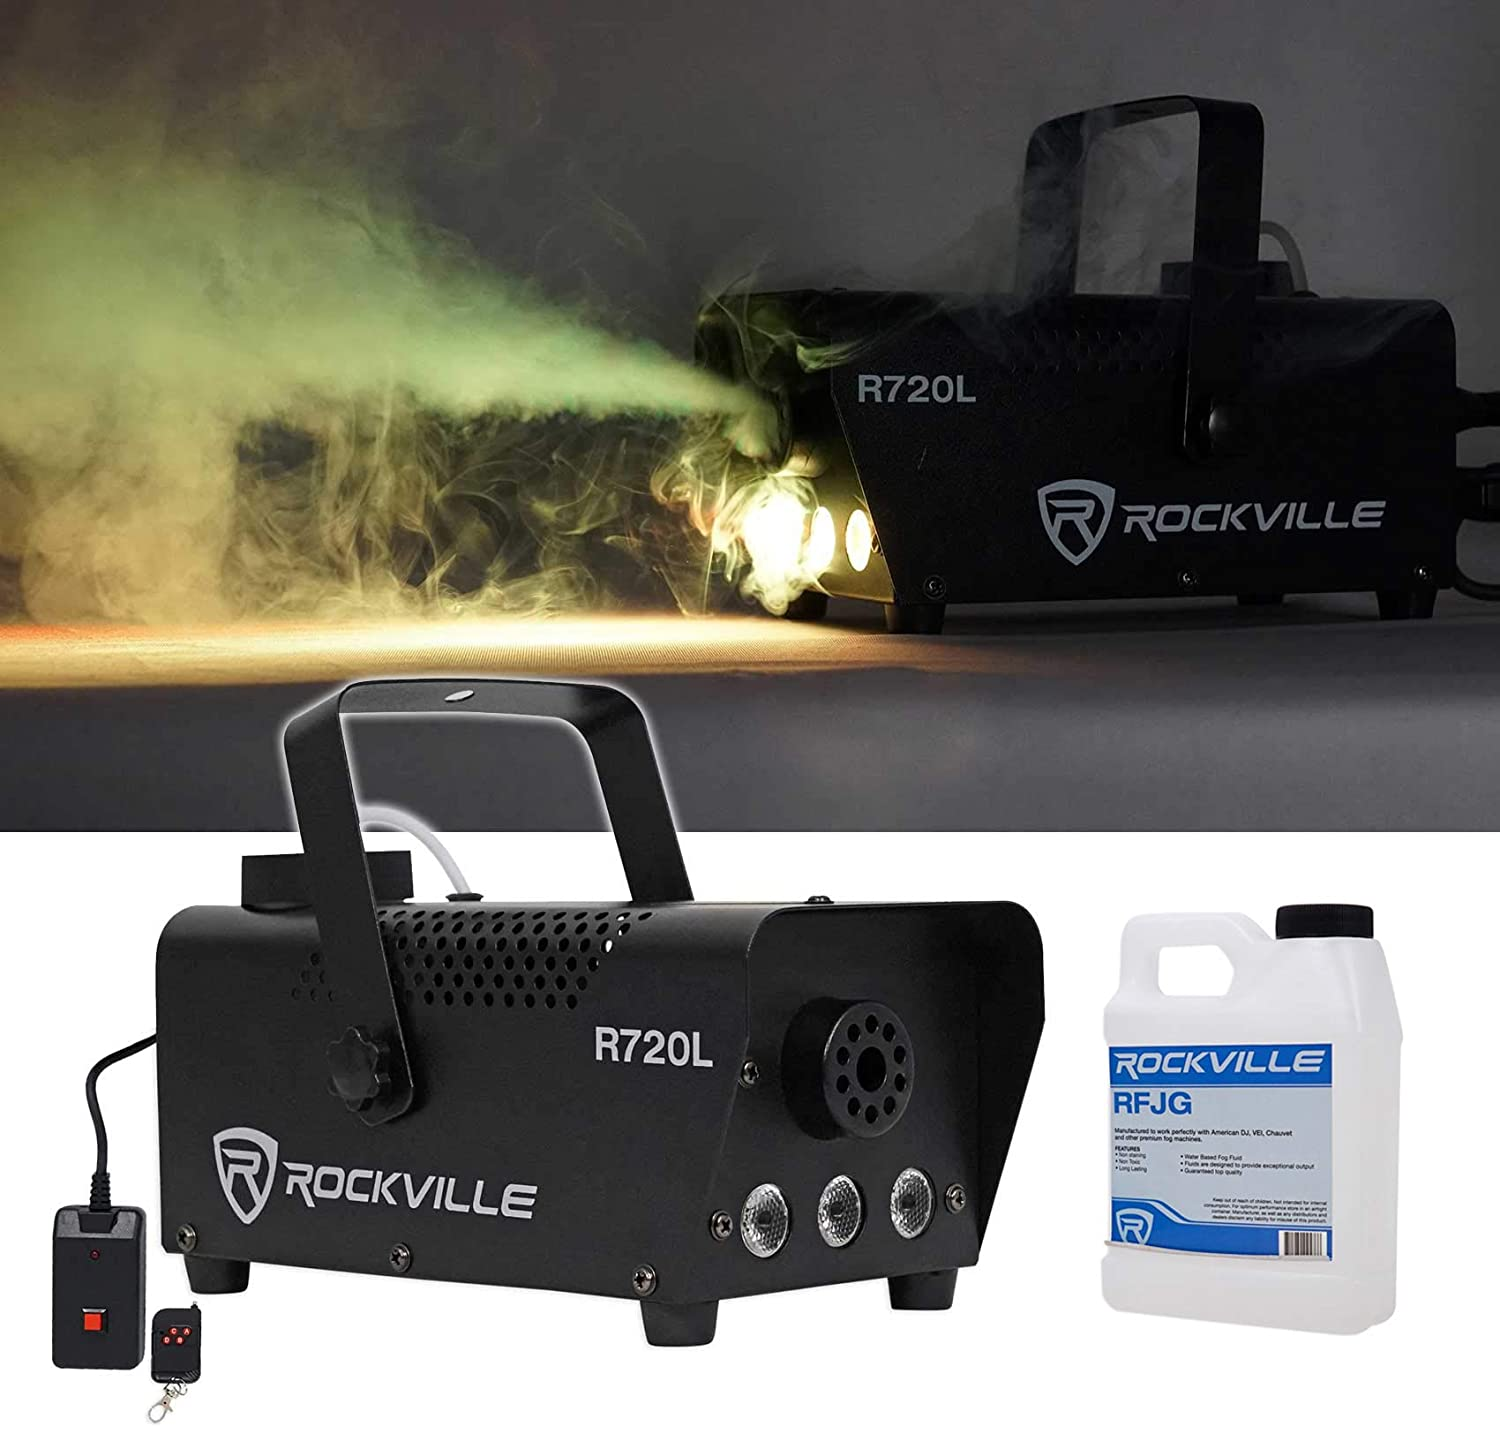 Top 10 Best Fog Machine For Halloween Reviews in 2021 2